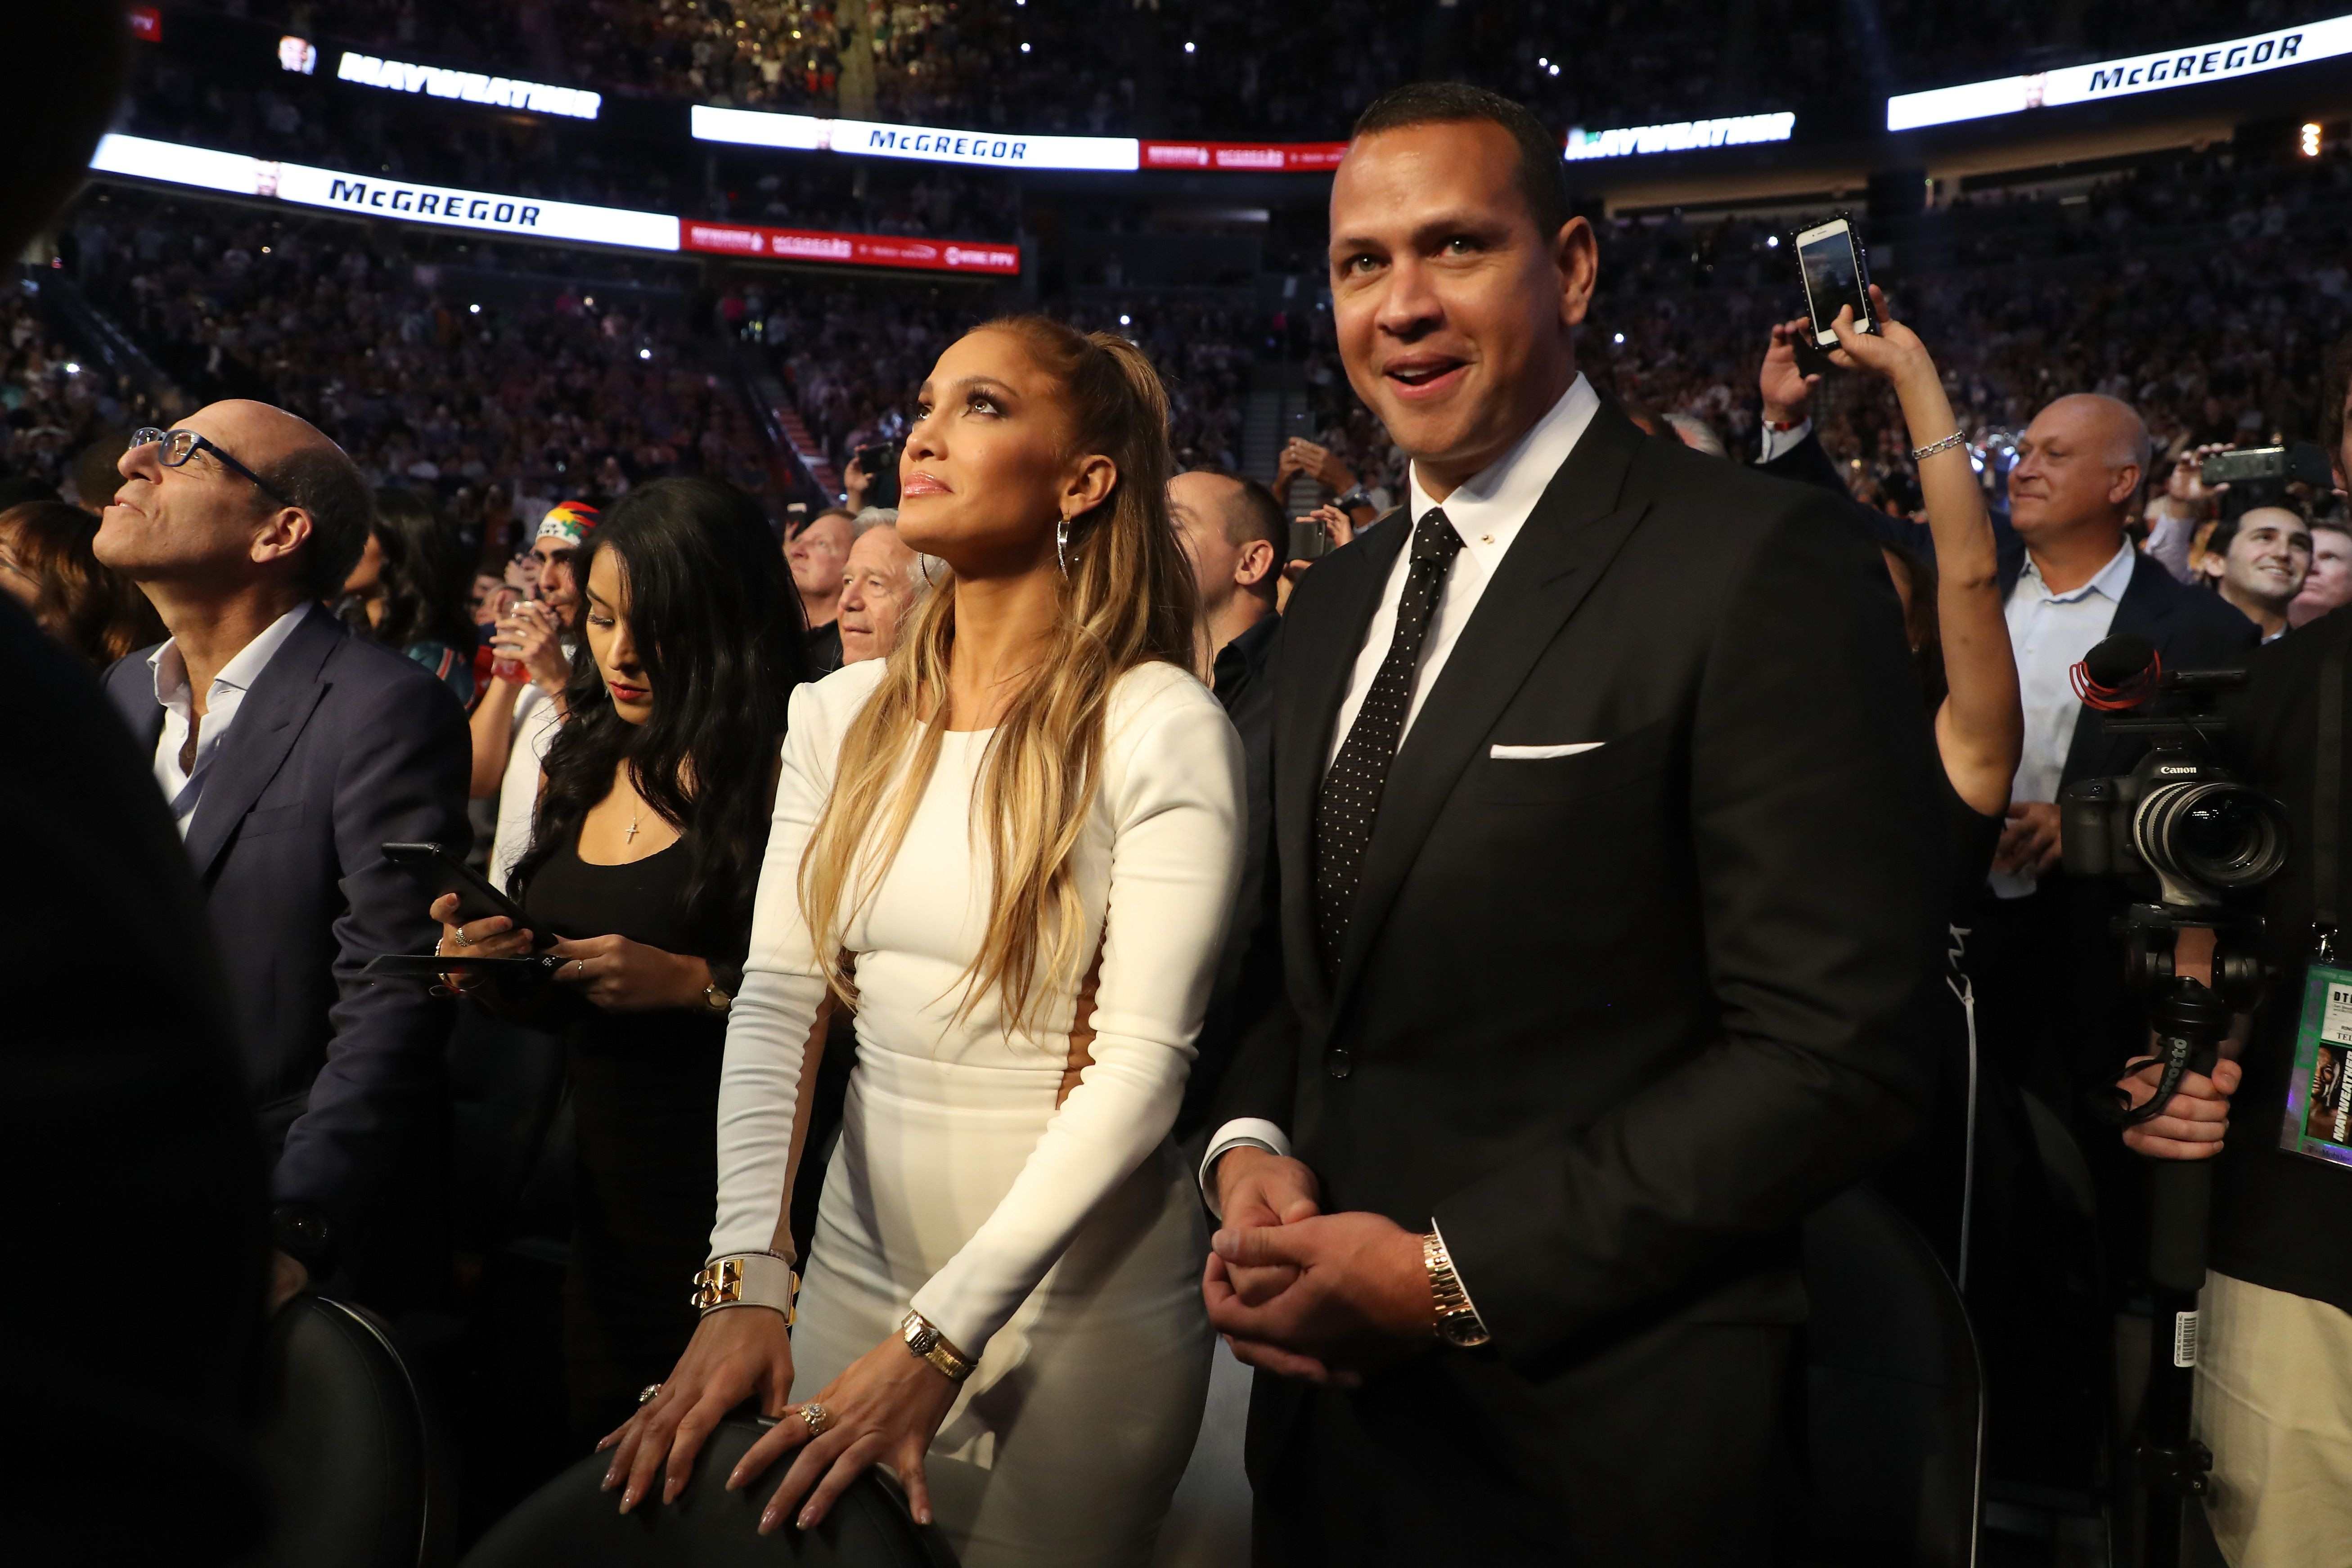 jennifer_lopez_and_former_mlb_player_alex_1